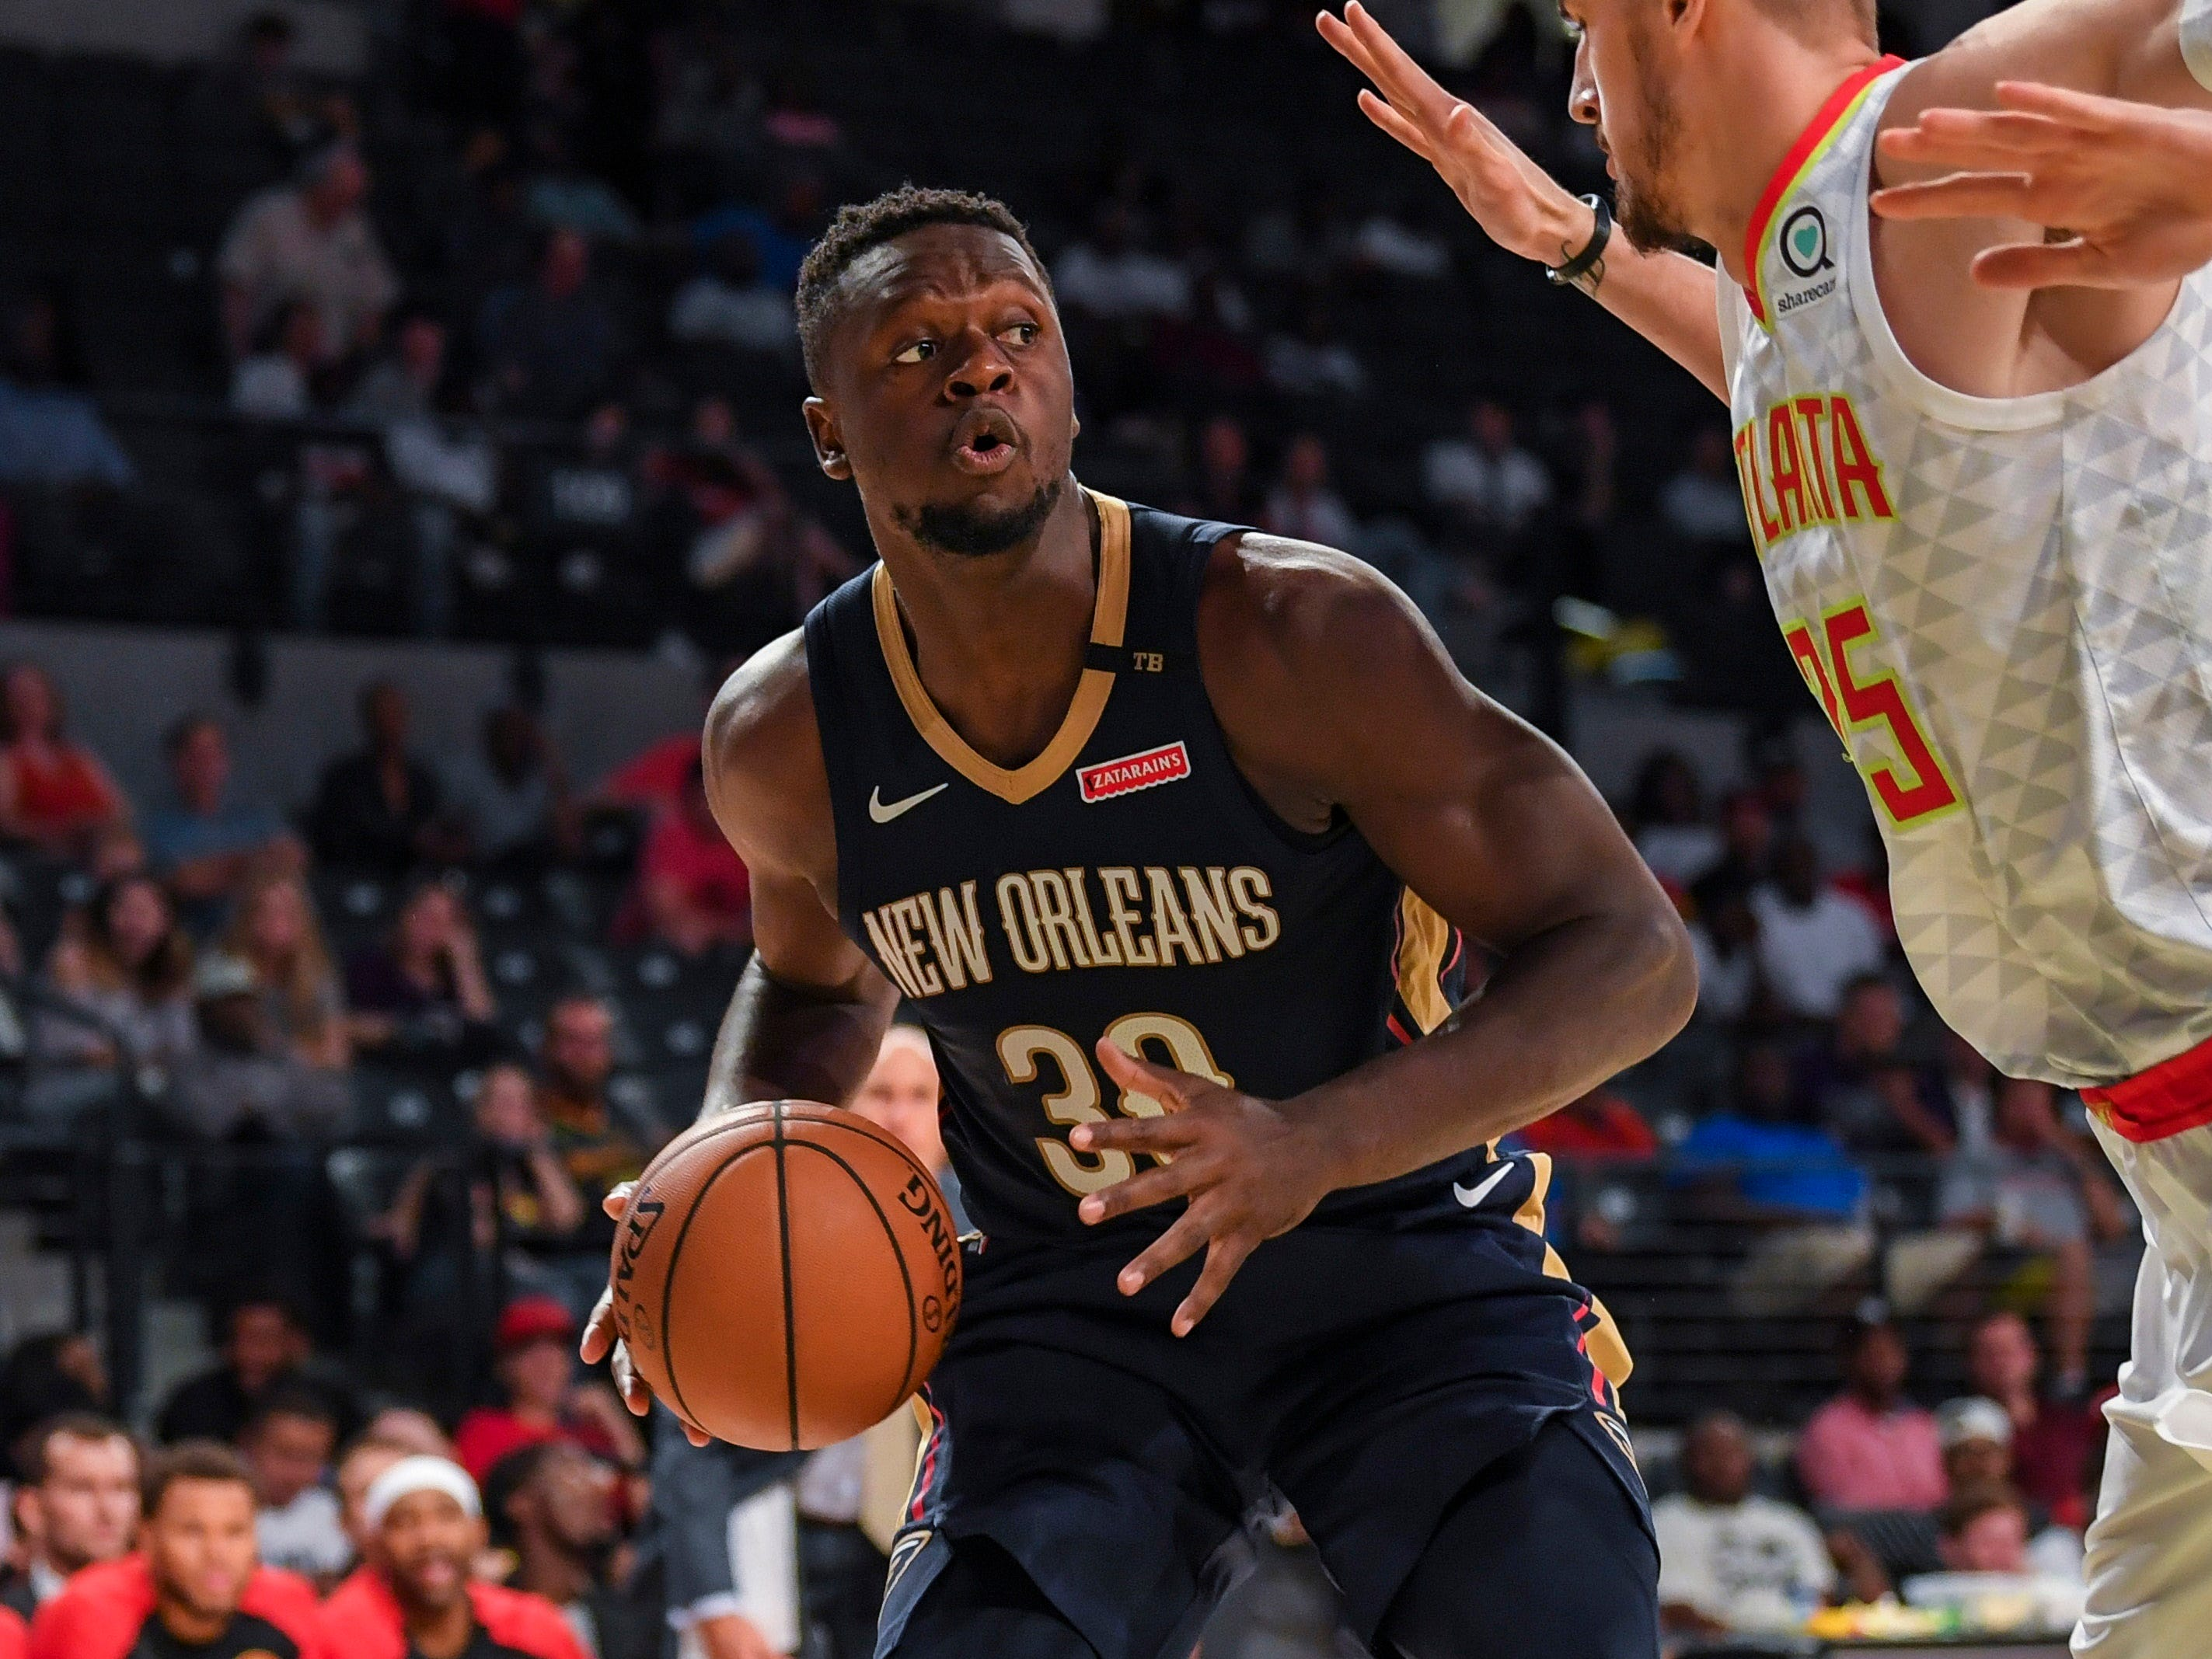 Julius Randle, New Orleans Pelicans — 24 (born 11/29/1994)